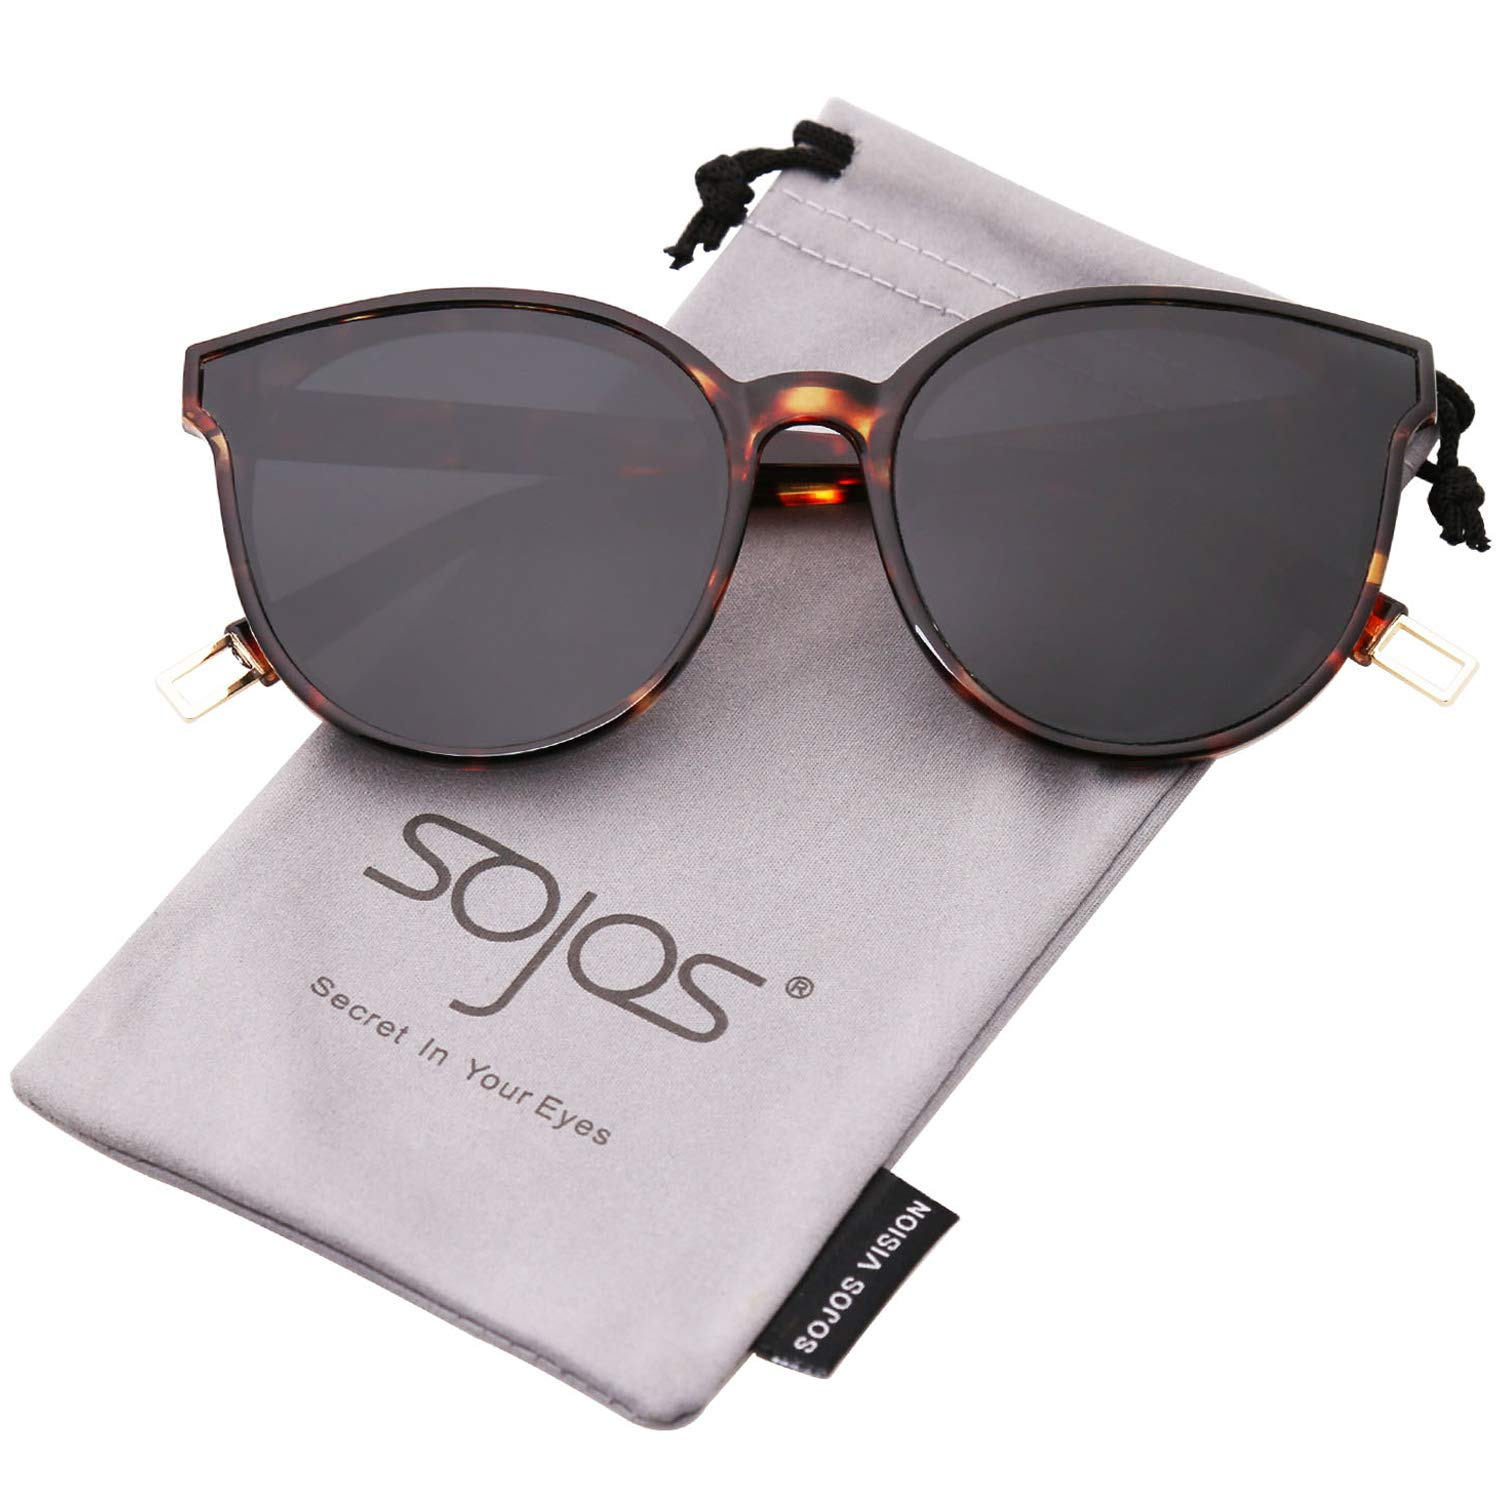 SOJOS Round Sunglasses for Women Mirrored Lens SJ2057 SJ2057C1